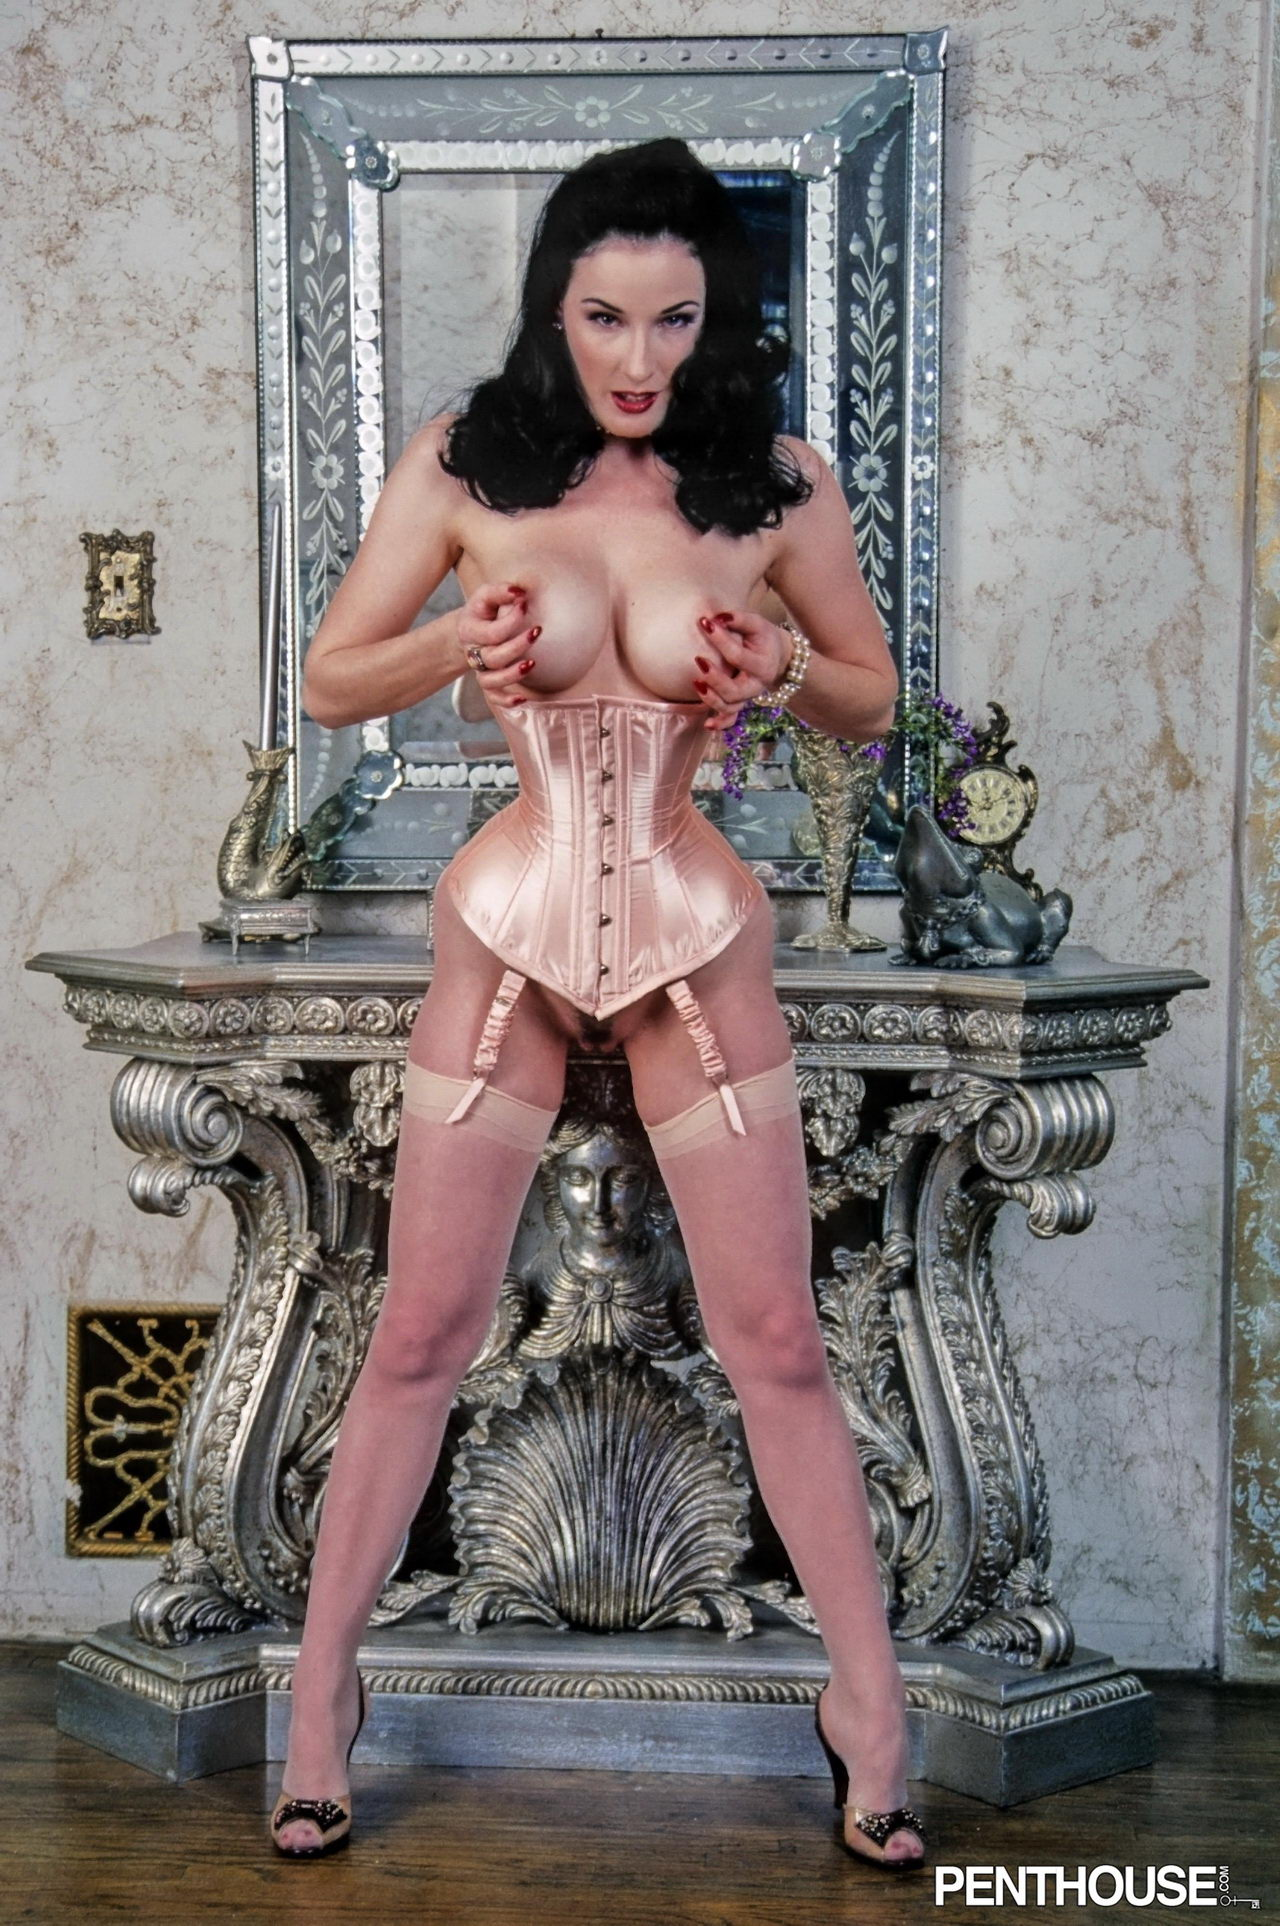 Course, the dita von teese erotic